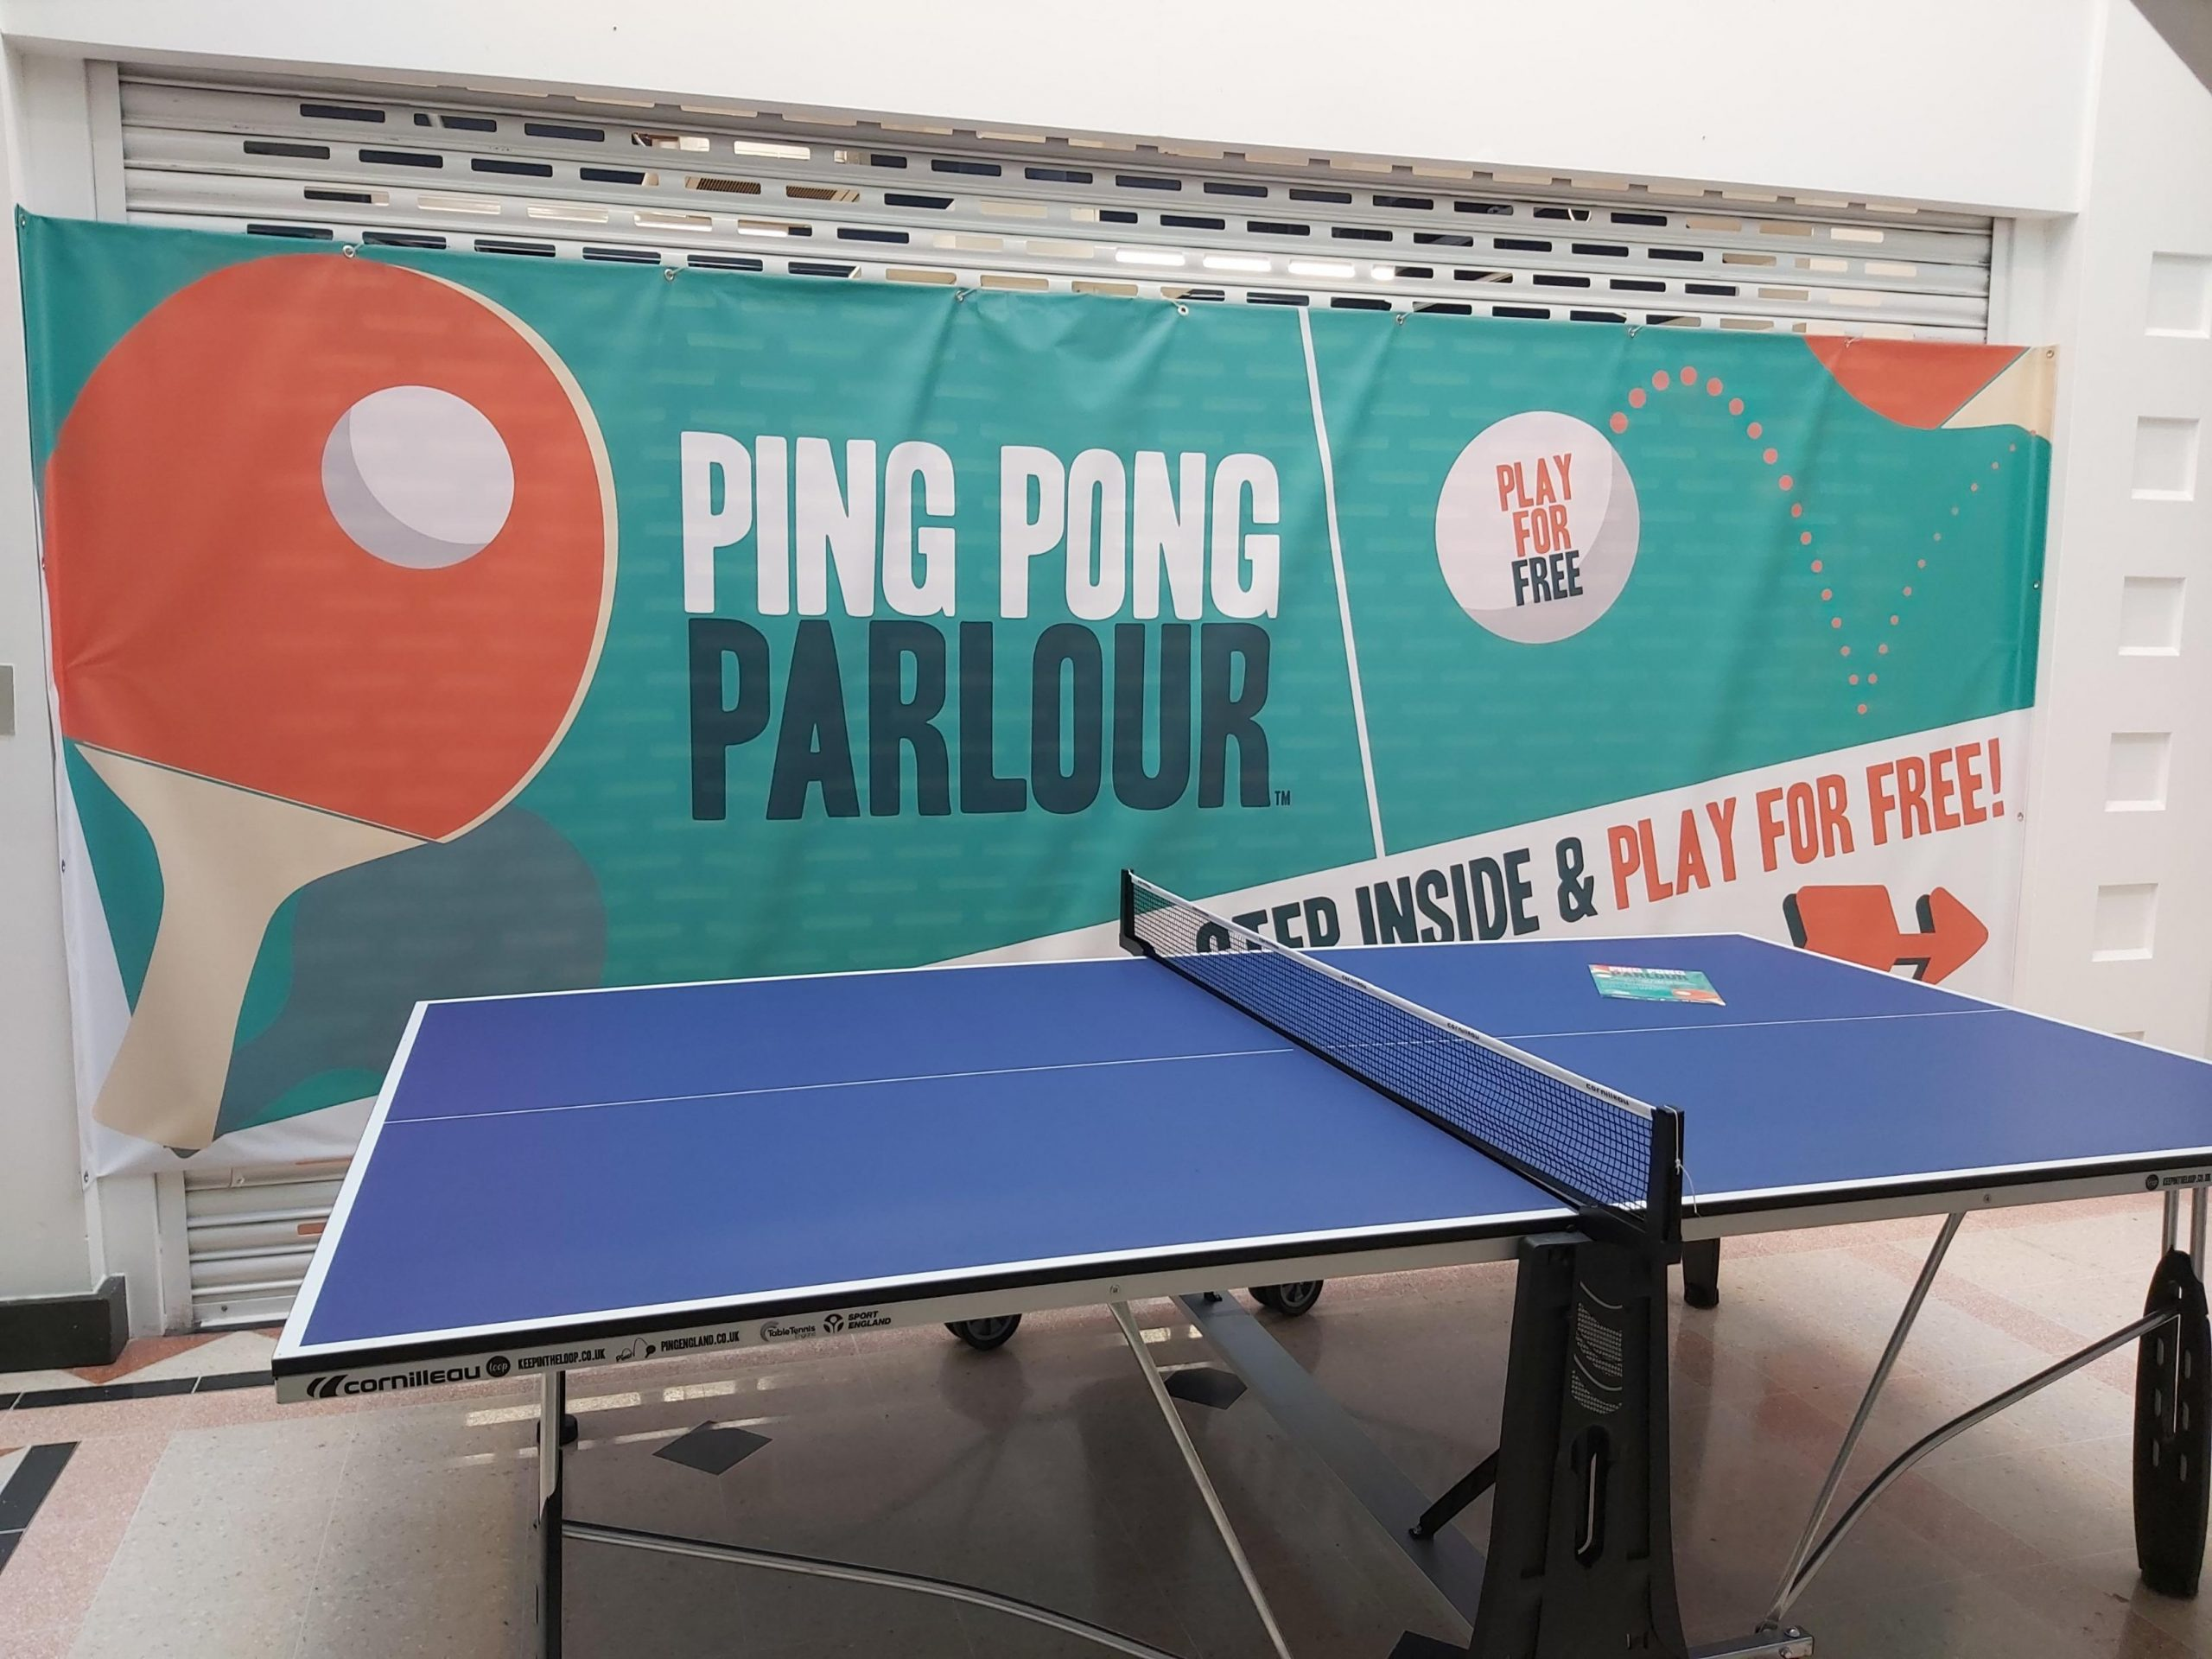 Leeds sporting celebrities head to Harrogate to unveil new ping-pong parlour